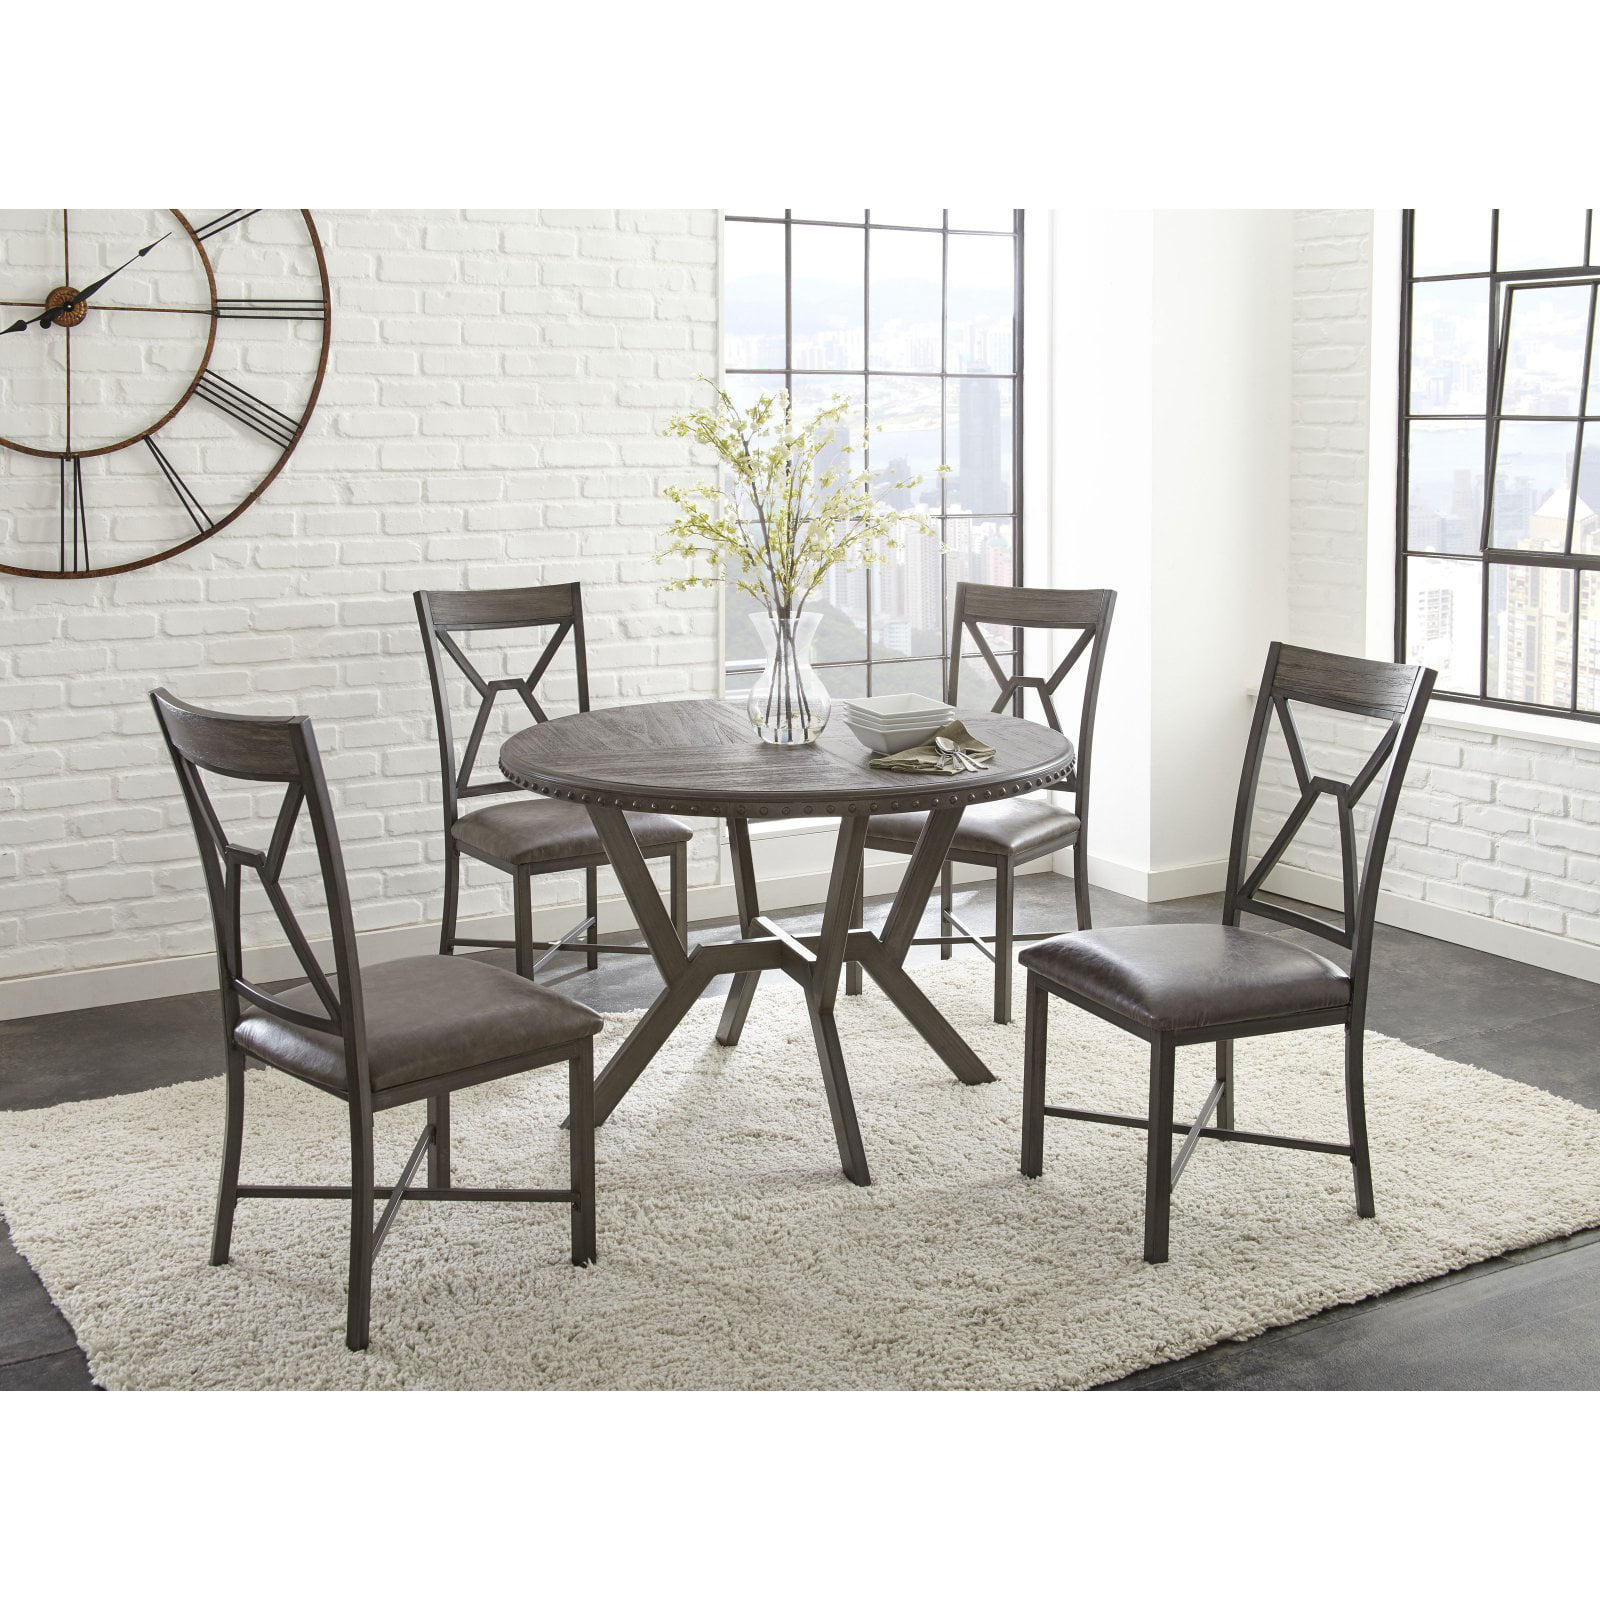 Dining Room Sets Round: Alamo Round Dining Table